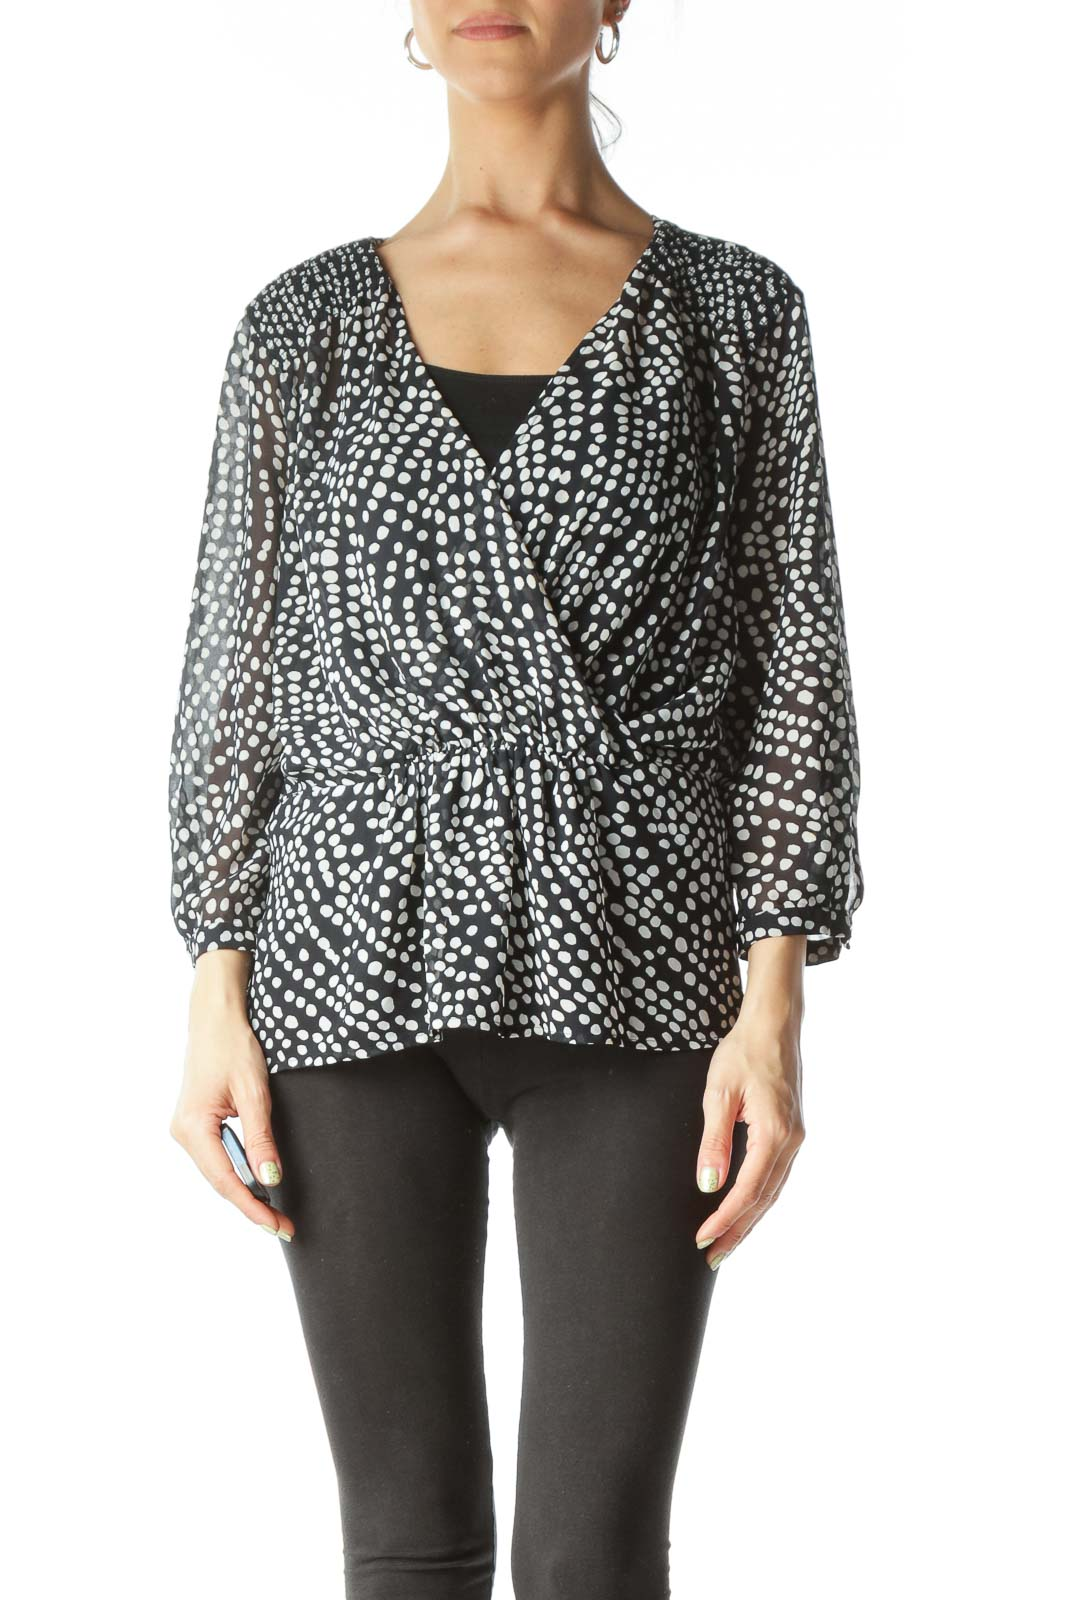 Black and White Polk- Dot Sheer V-Neck Blouse